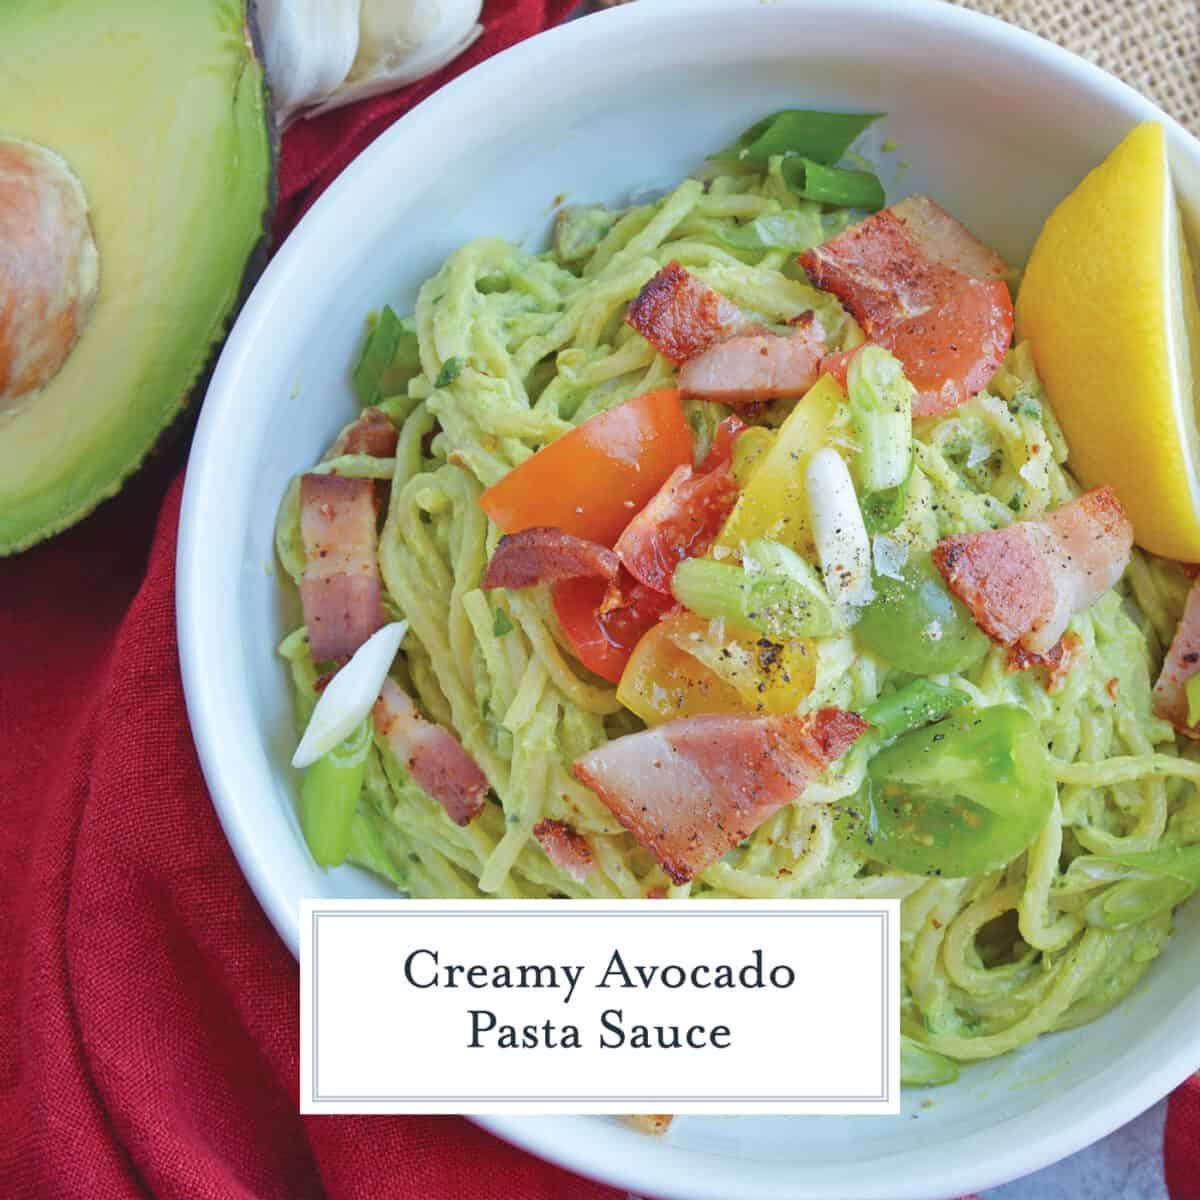 creamy avocado pasta sauce with vegetables